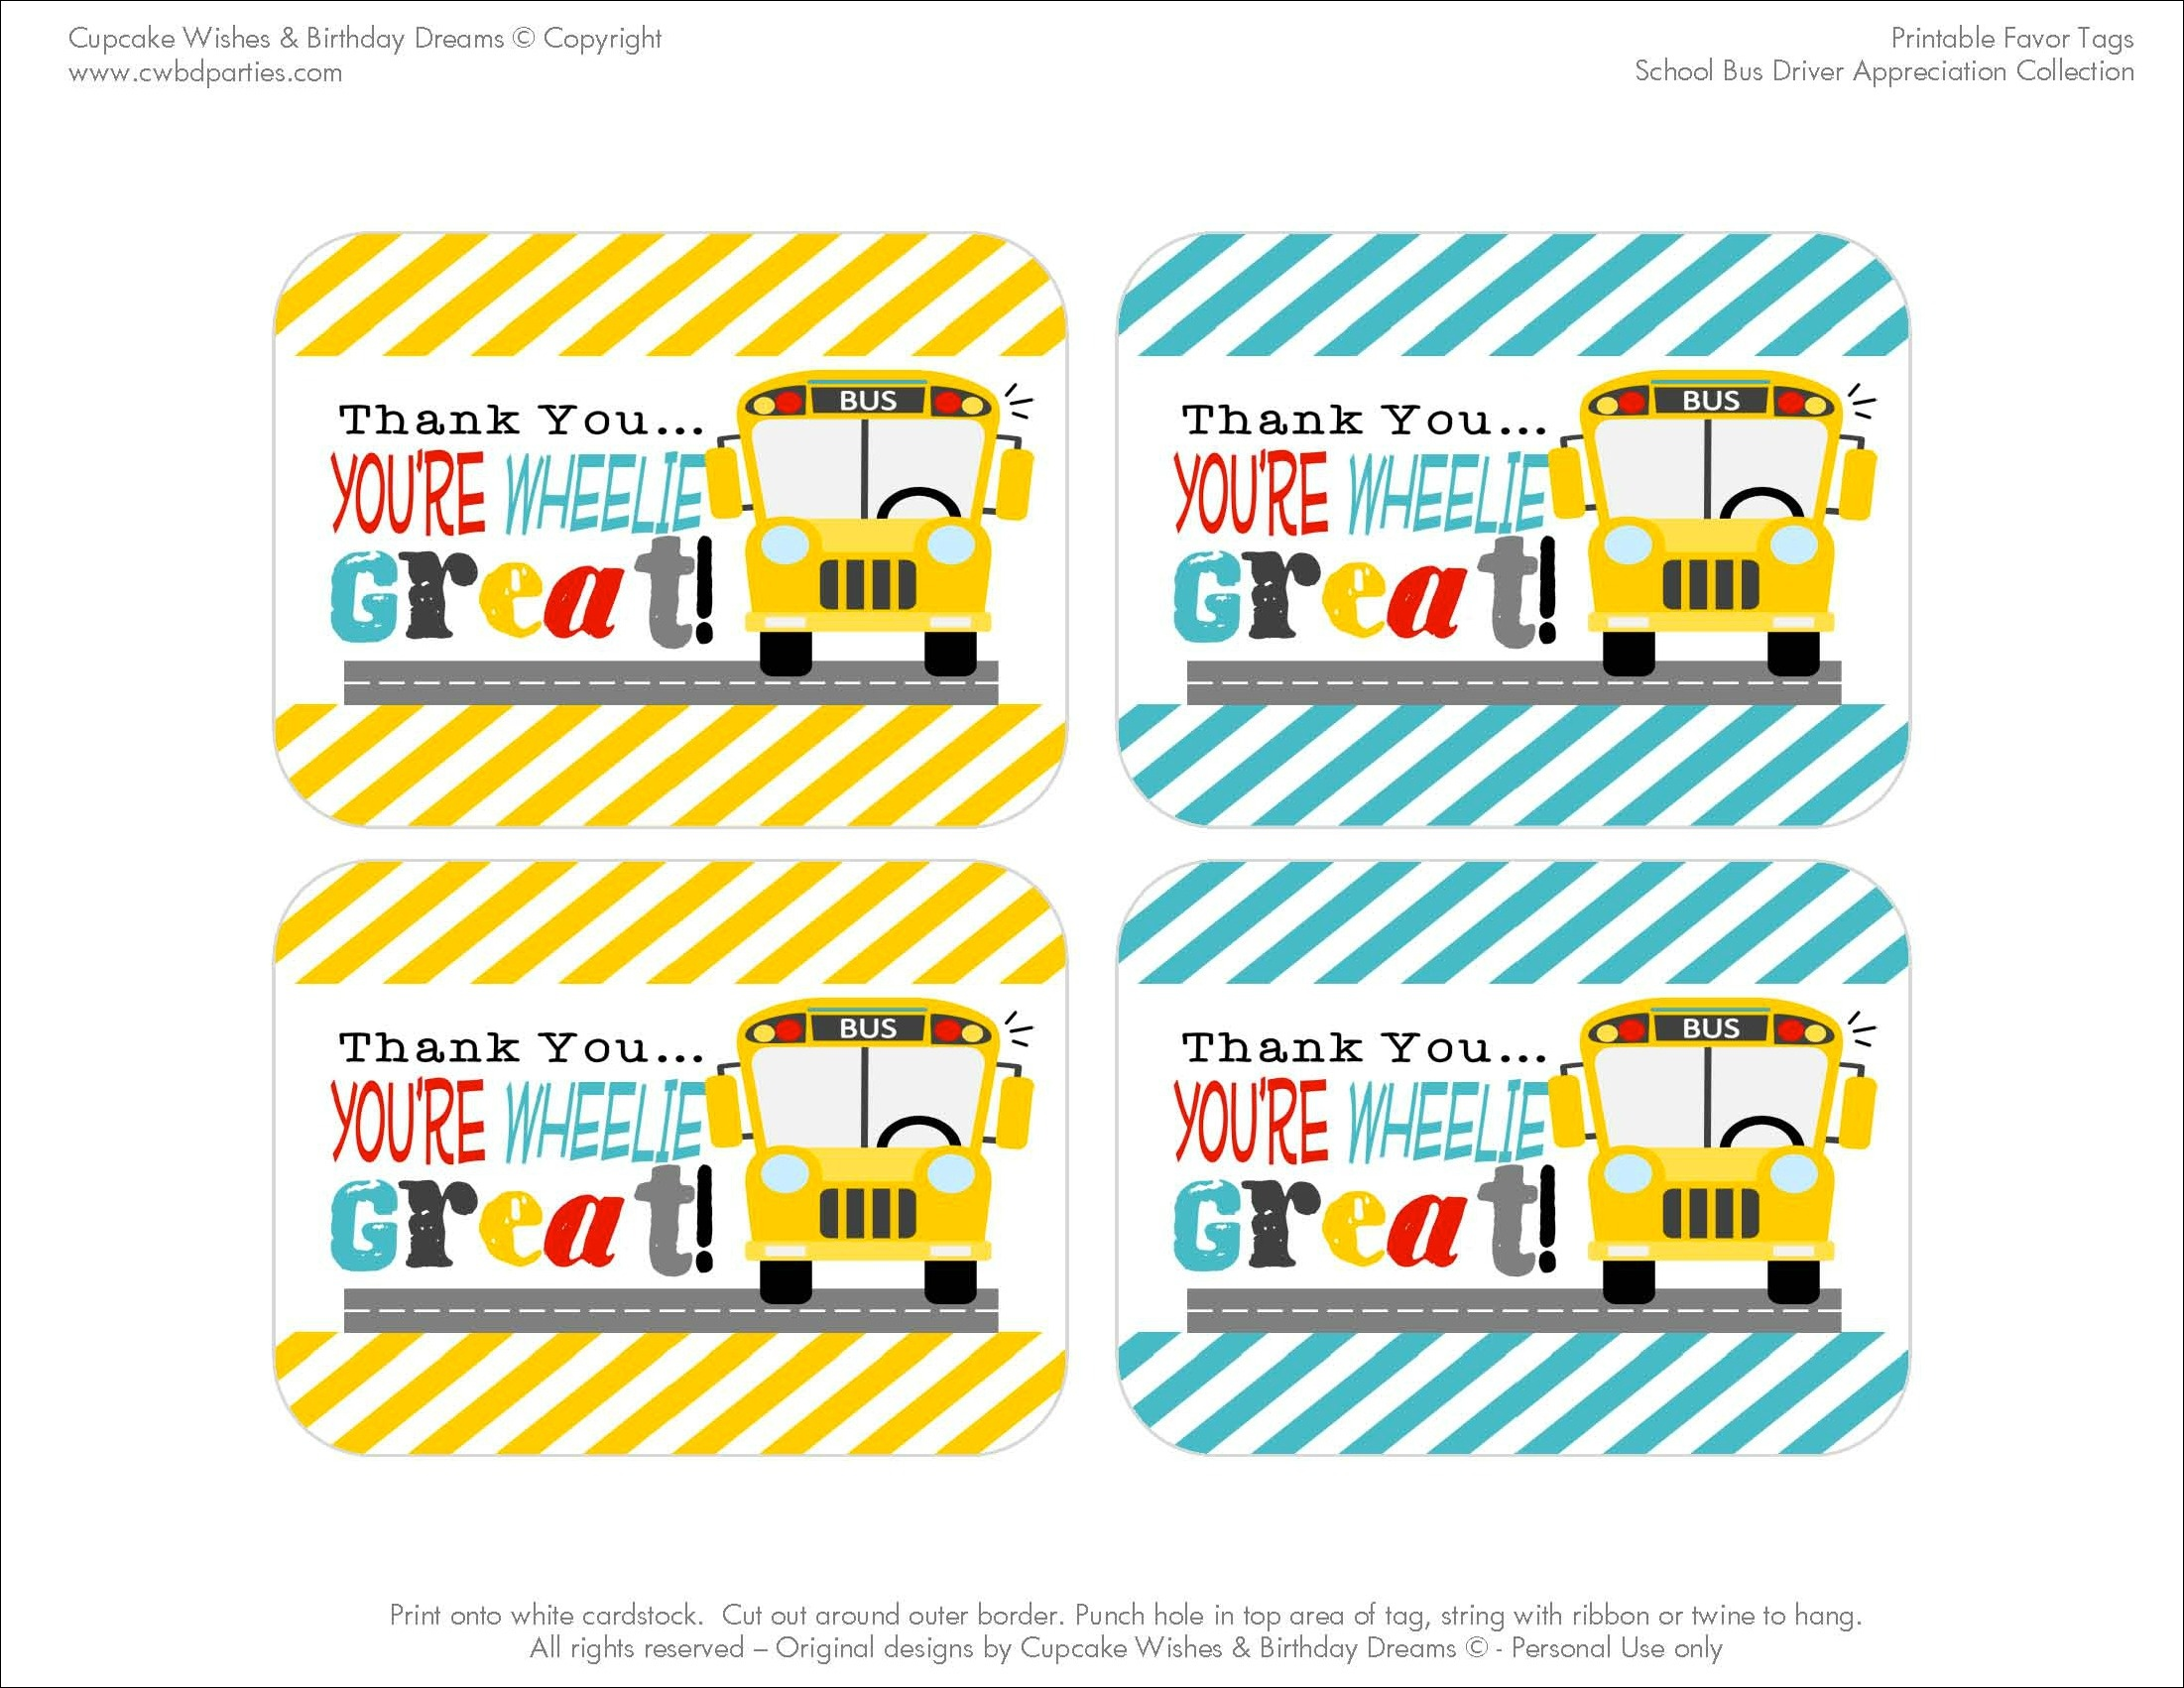 Free Printables: School Bus Driver Appreciation - Free Printable School Bus Template